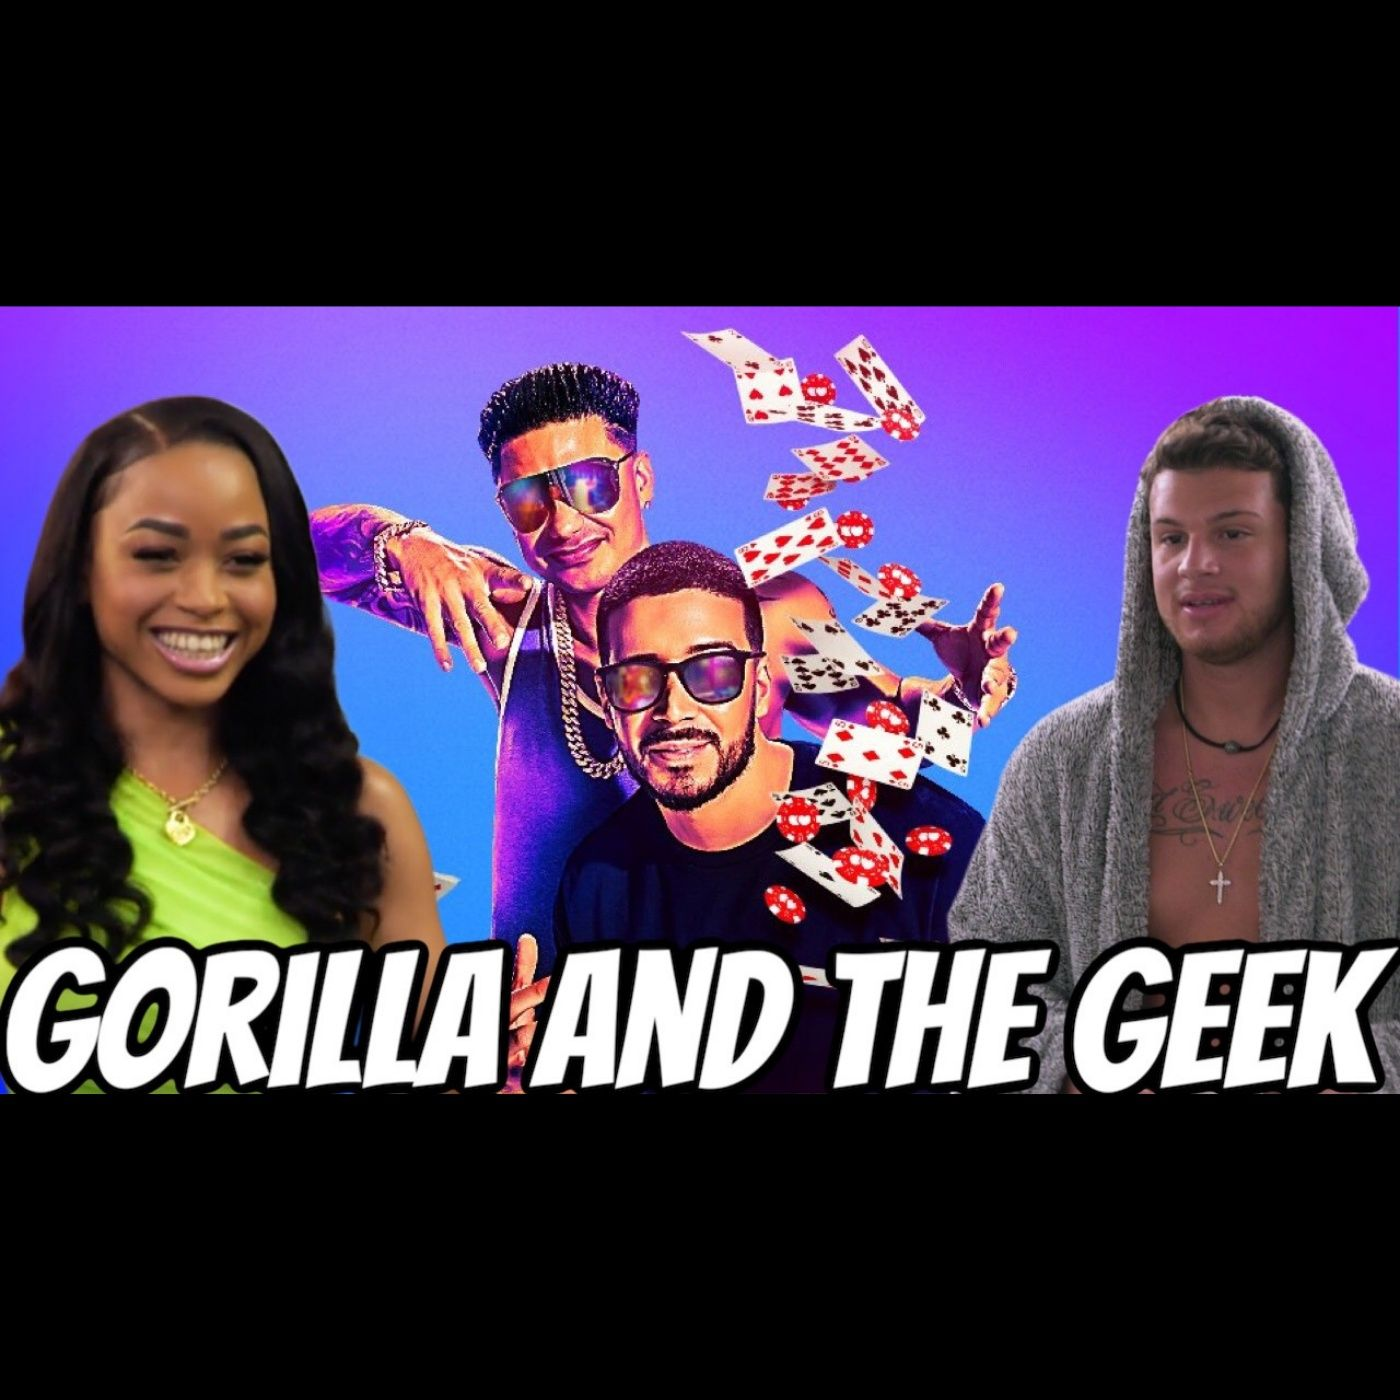 Double Shot at Love Season 2 - Reality Review - Gorilla and The Geek Episode 29